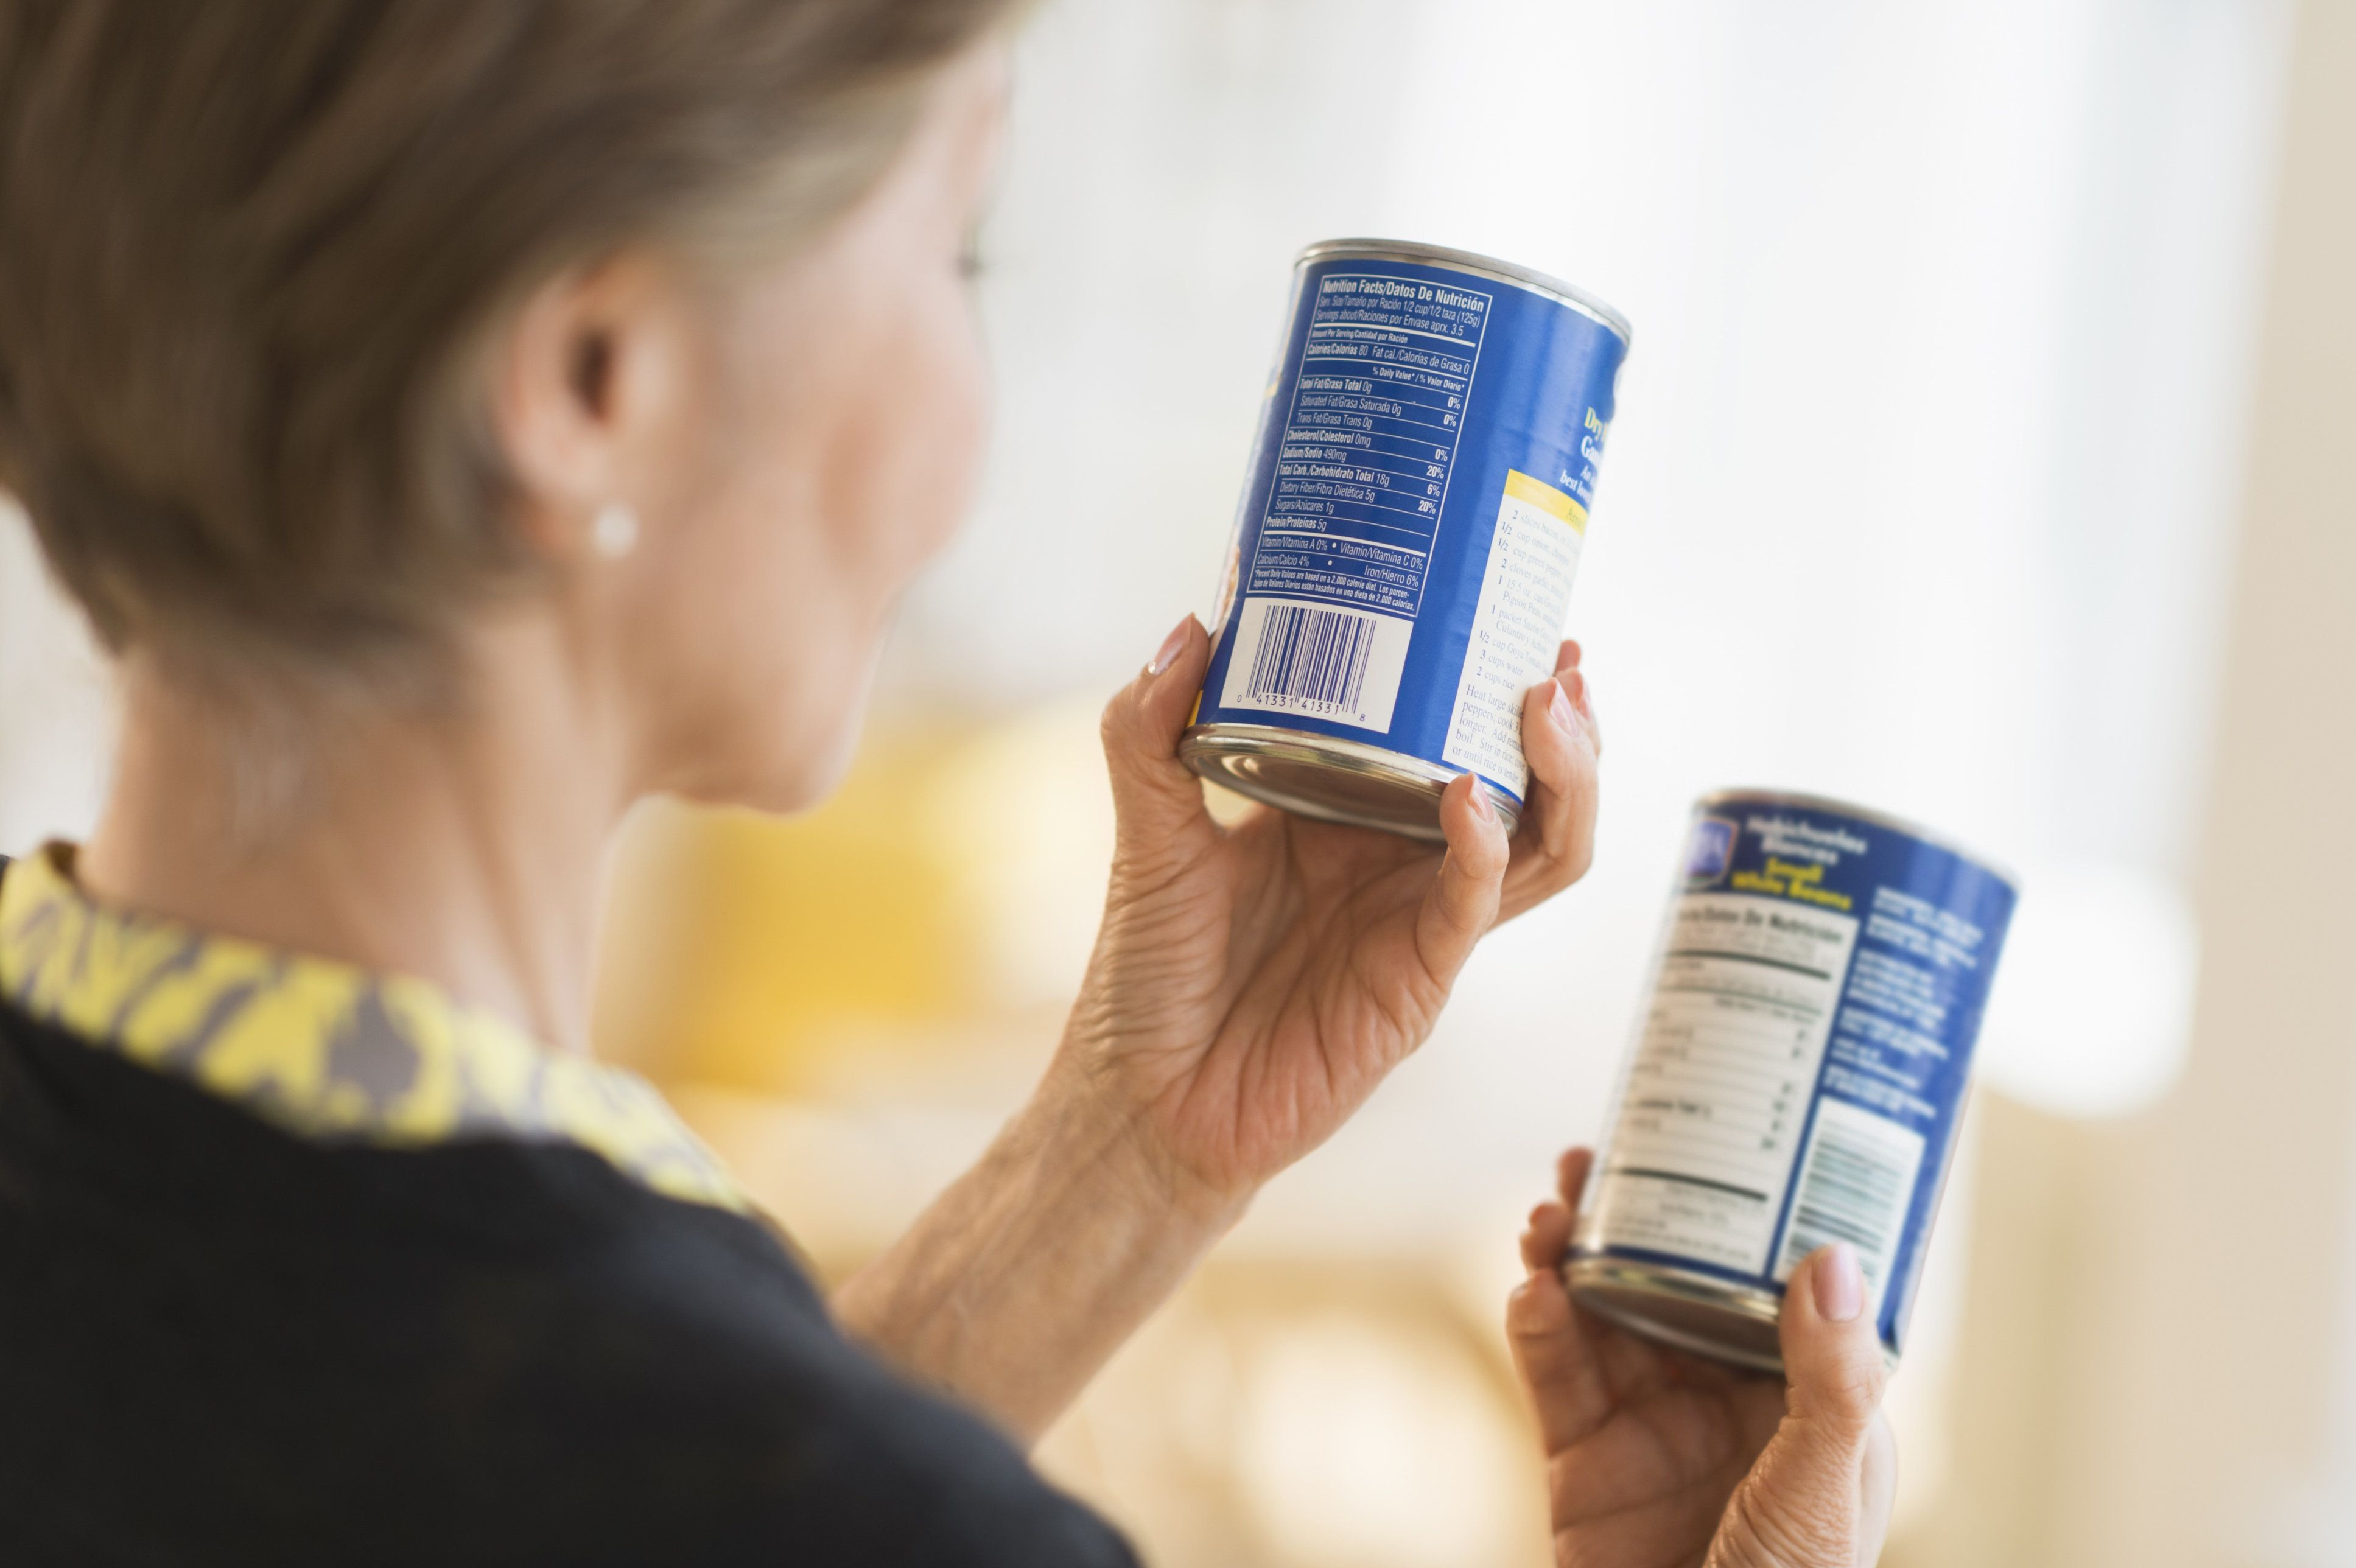 USA, New Jersey, Jersey City, Senior woman reading labels on canned food